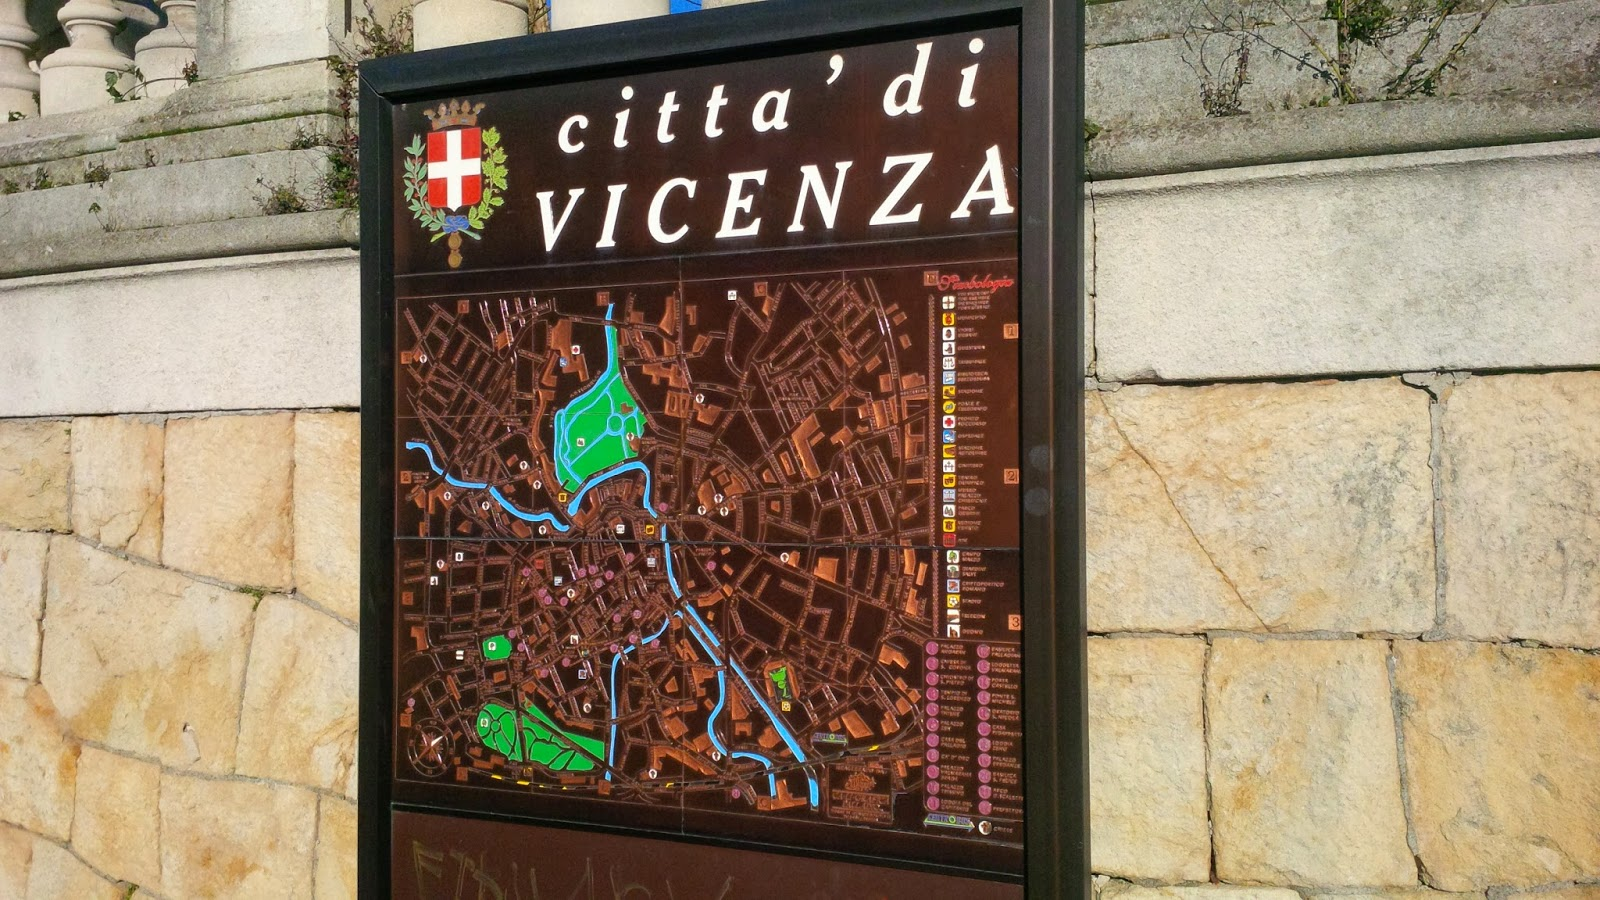 A map of the city of Vicenza in Northern Italy